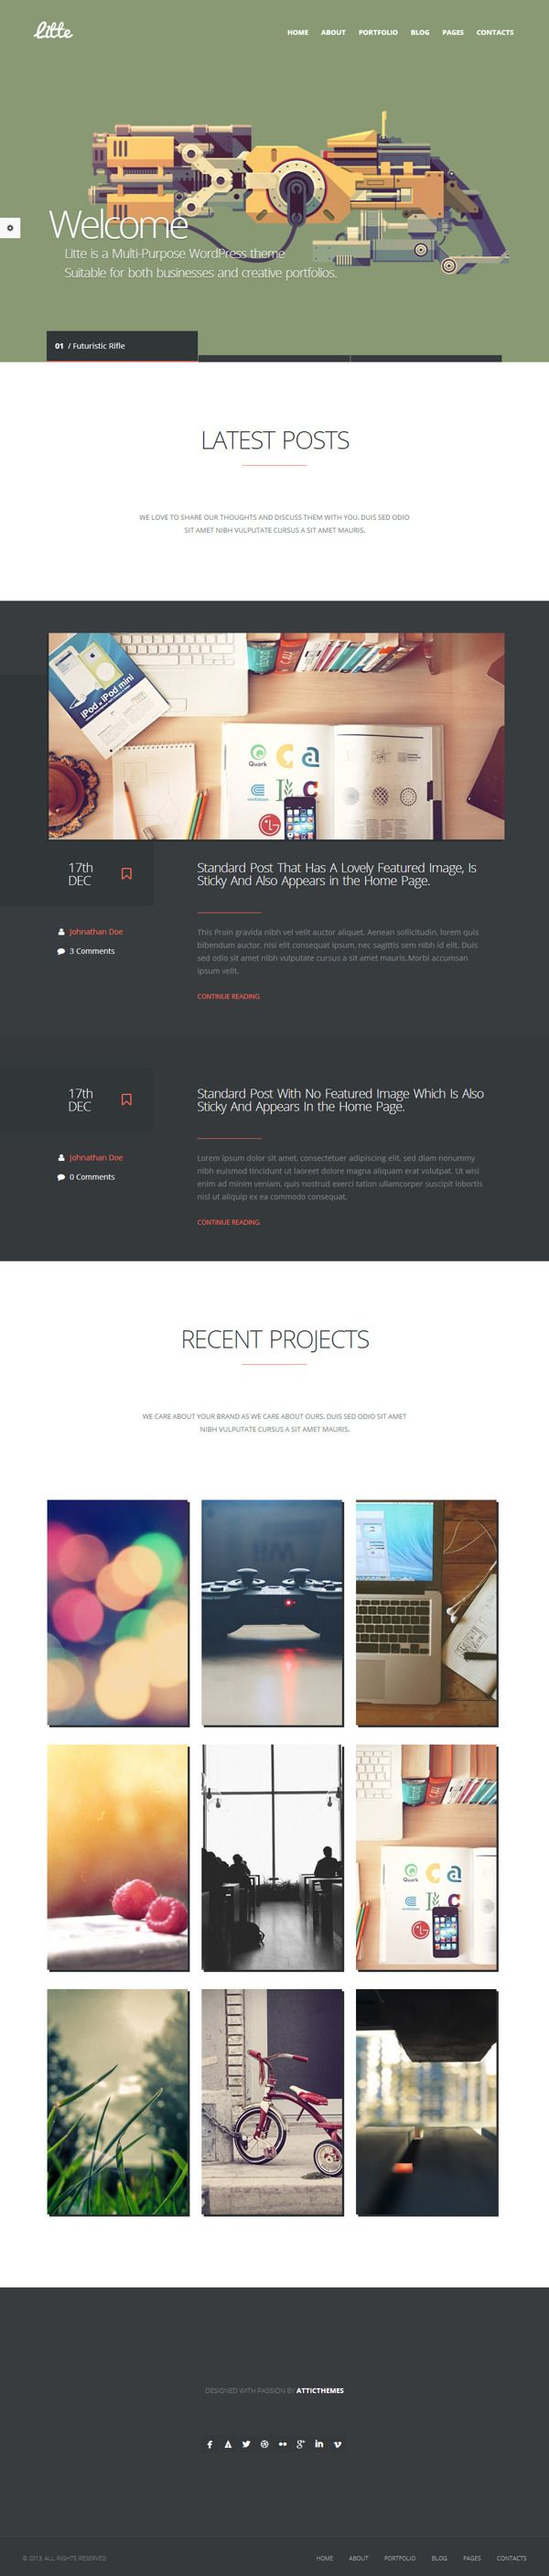 Little WordPress Theme by WordPress Design Awards, via Behance